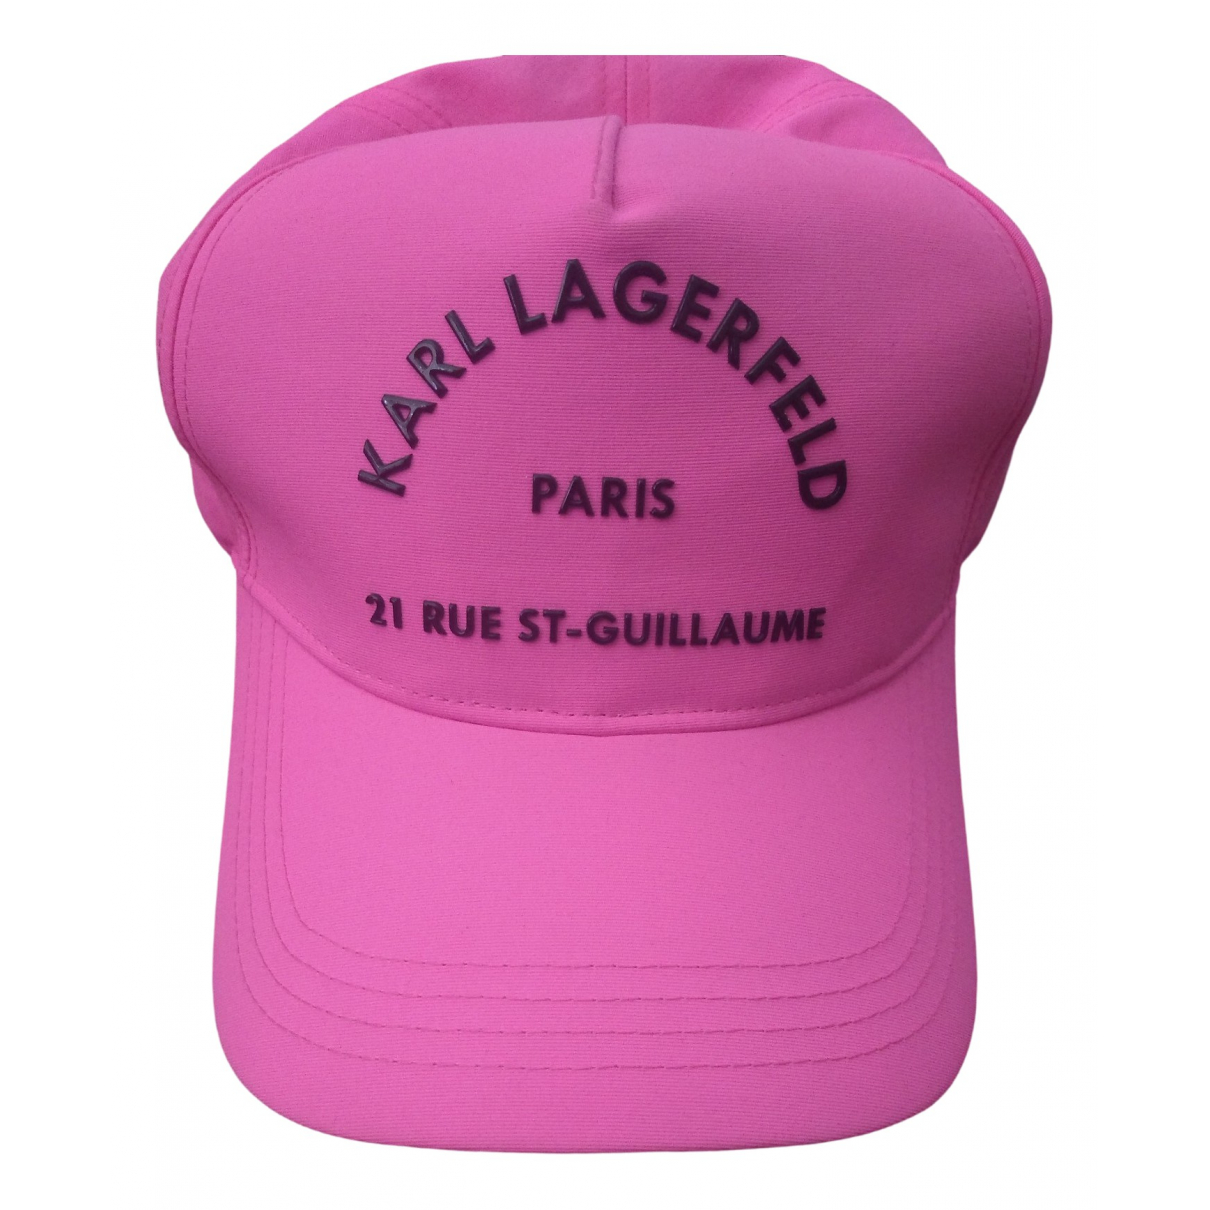 Karl Lagerfeld \N Pink Cloth hat for Women M International